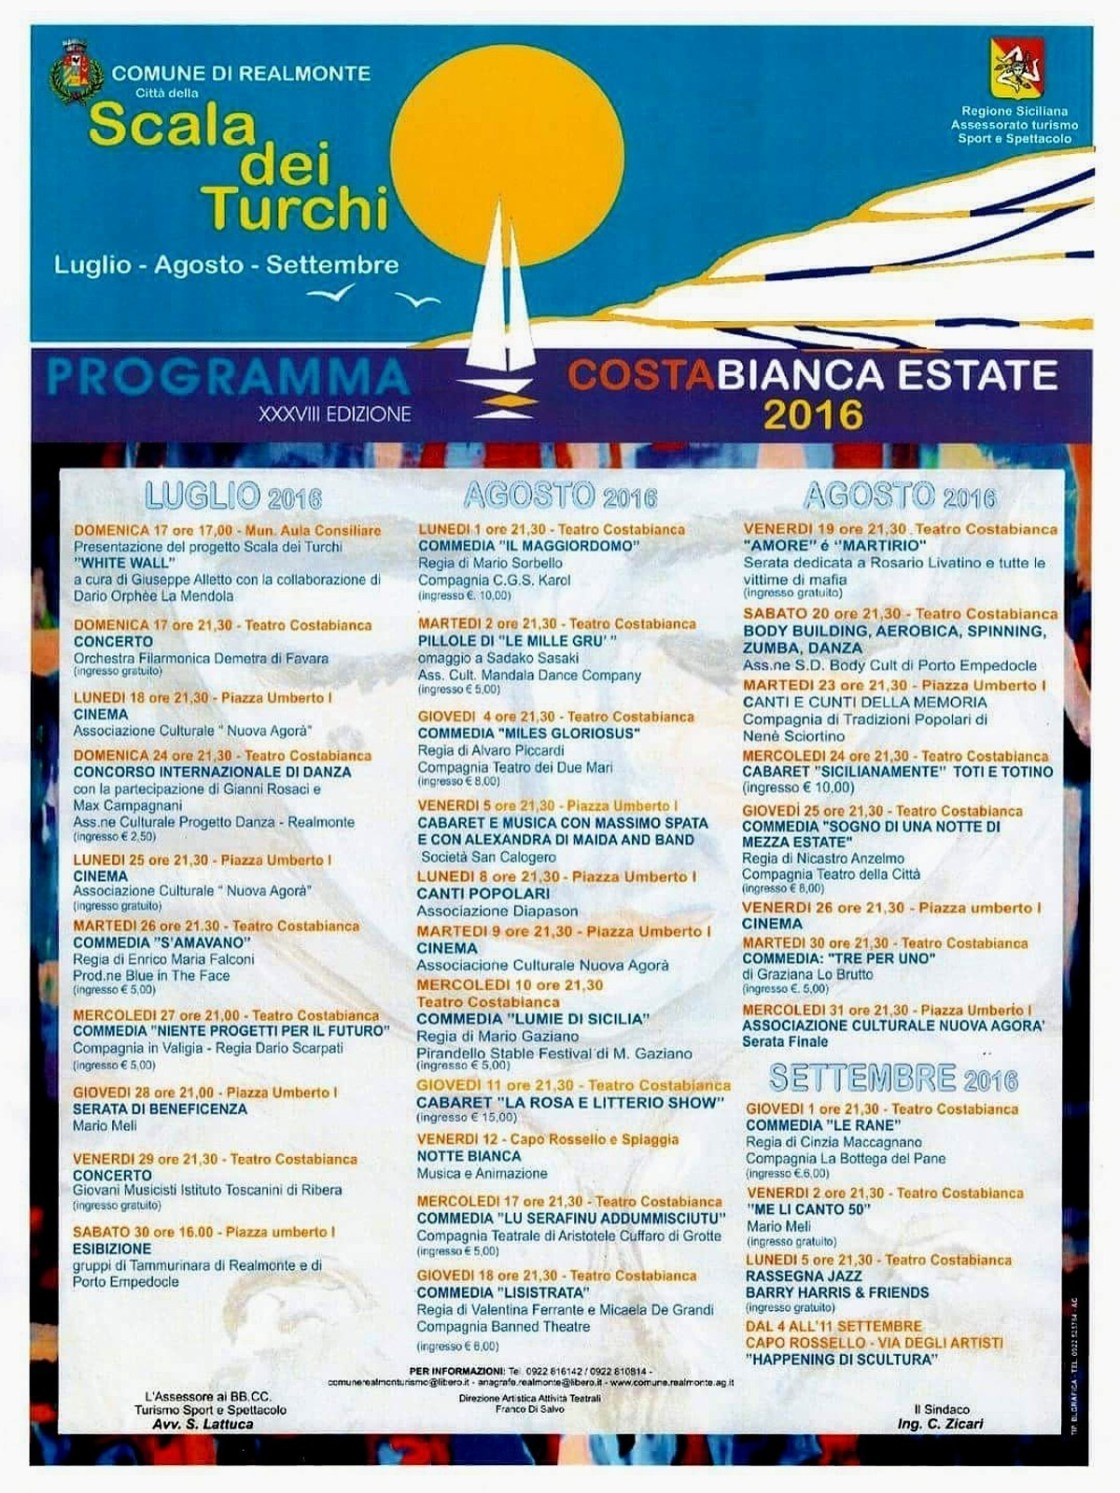 Costabianca_Estate_2016_Programma